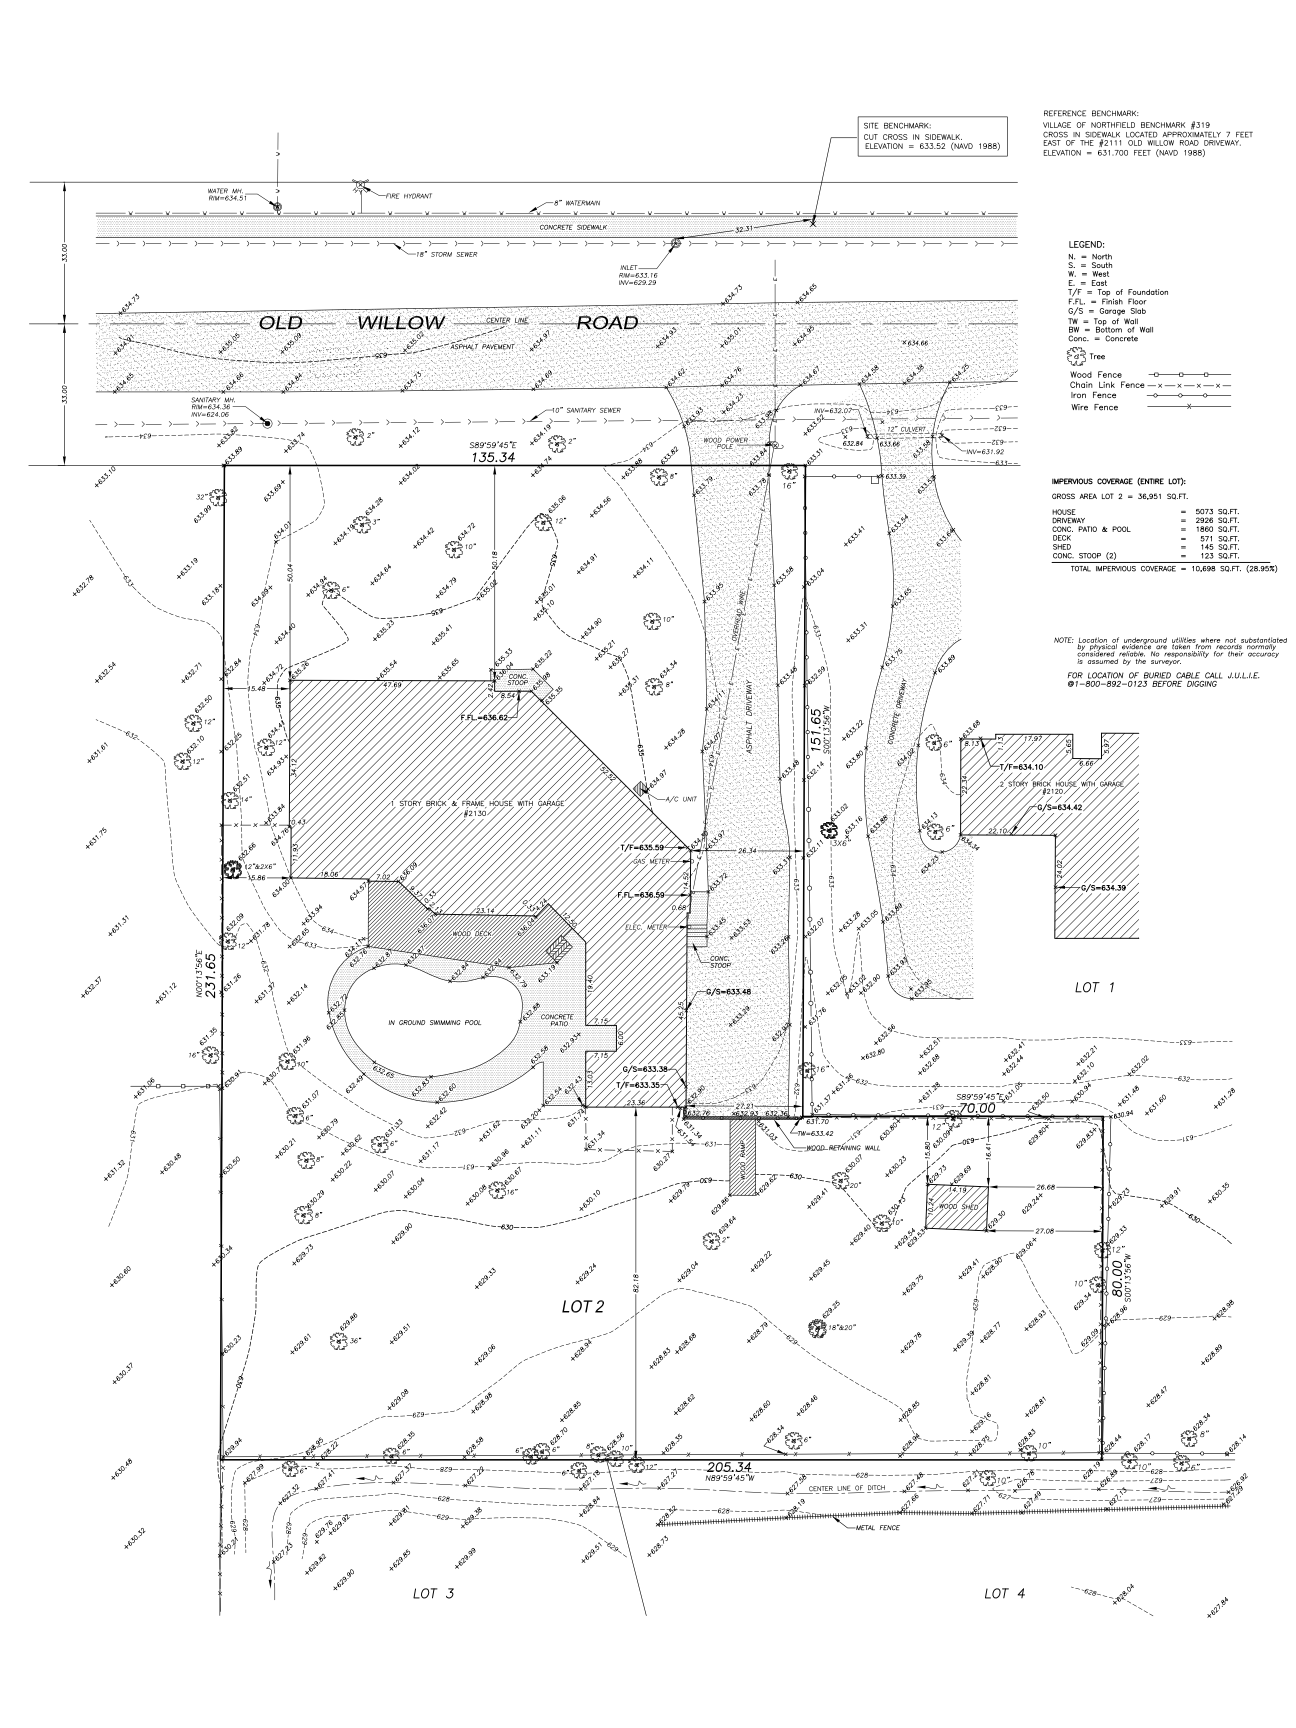 plat of topography/ topographic survey